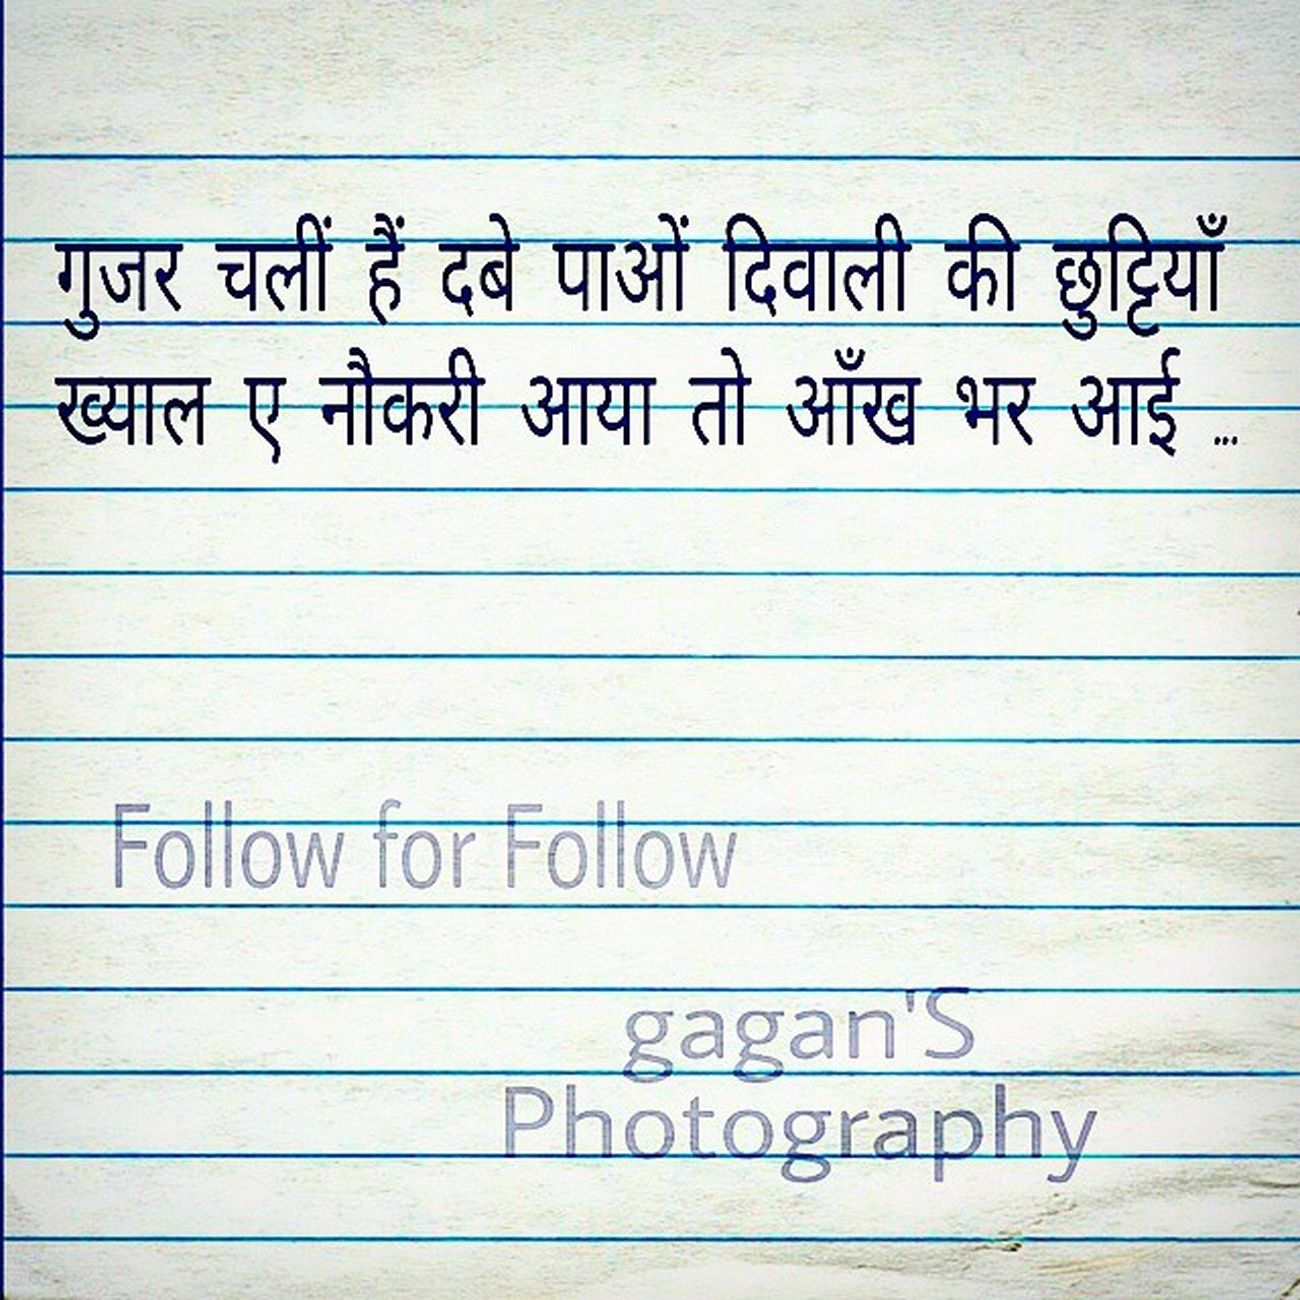 Gagans_photography Followforfollow Diwali2014 Holidays Coming To  End